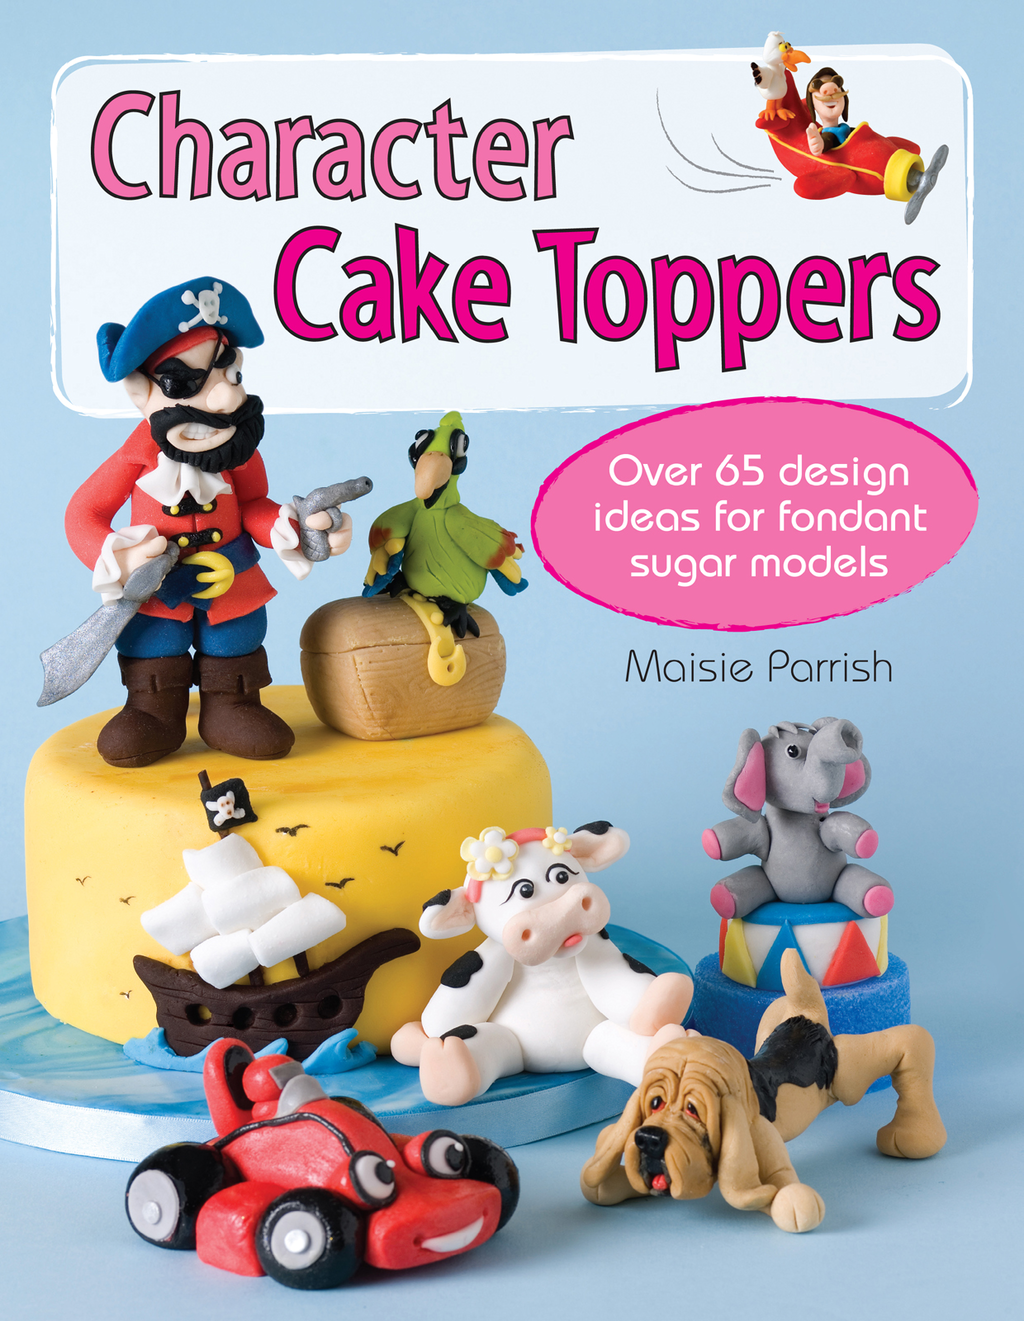 Character Cake Toppers Over 65 Design Ideas for Sugar Fondant Models